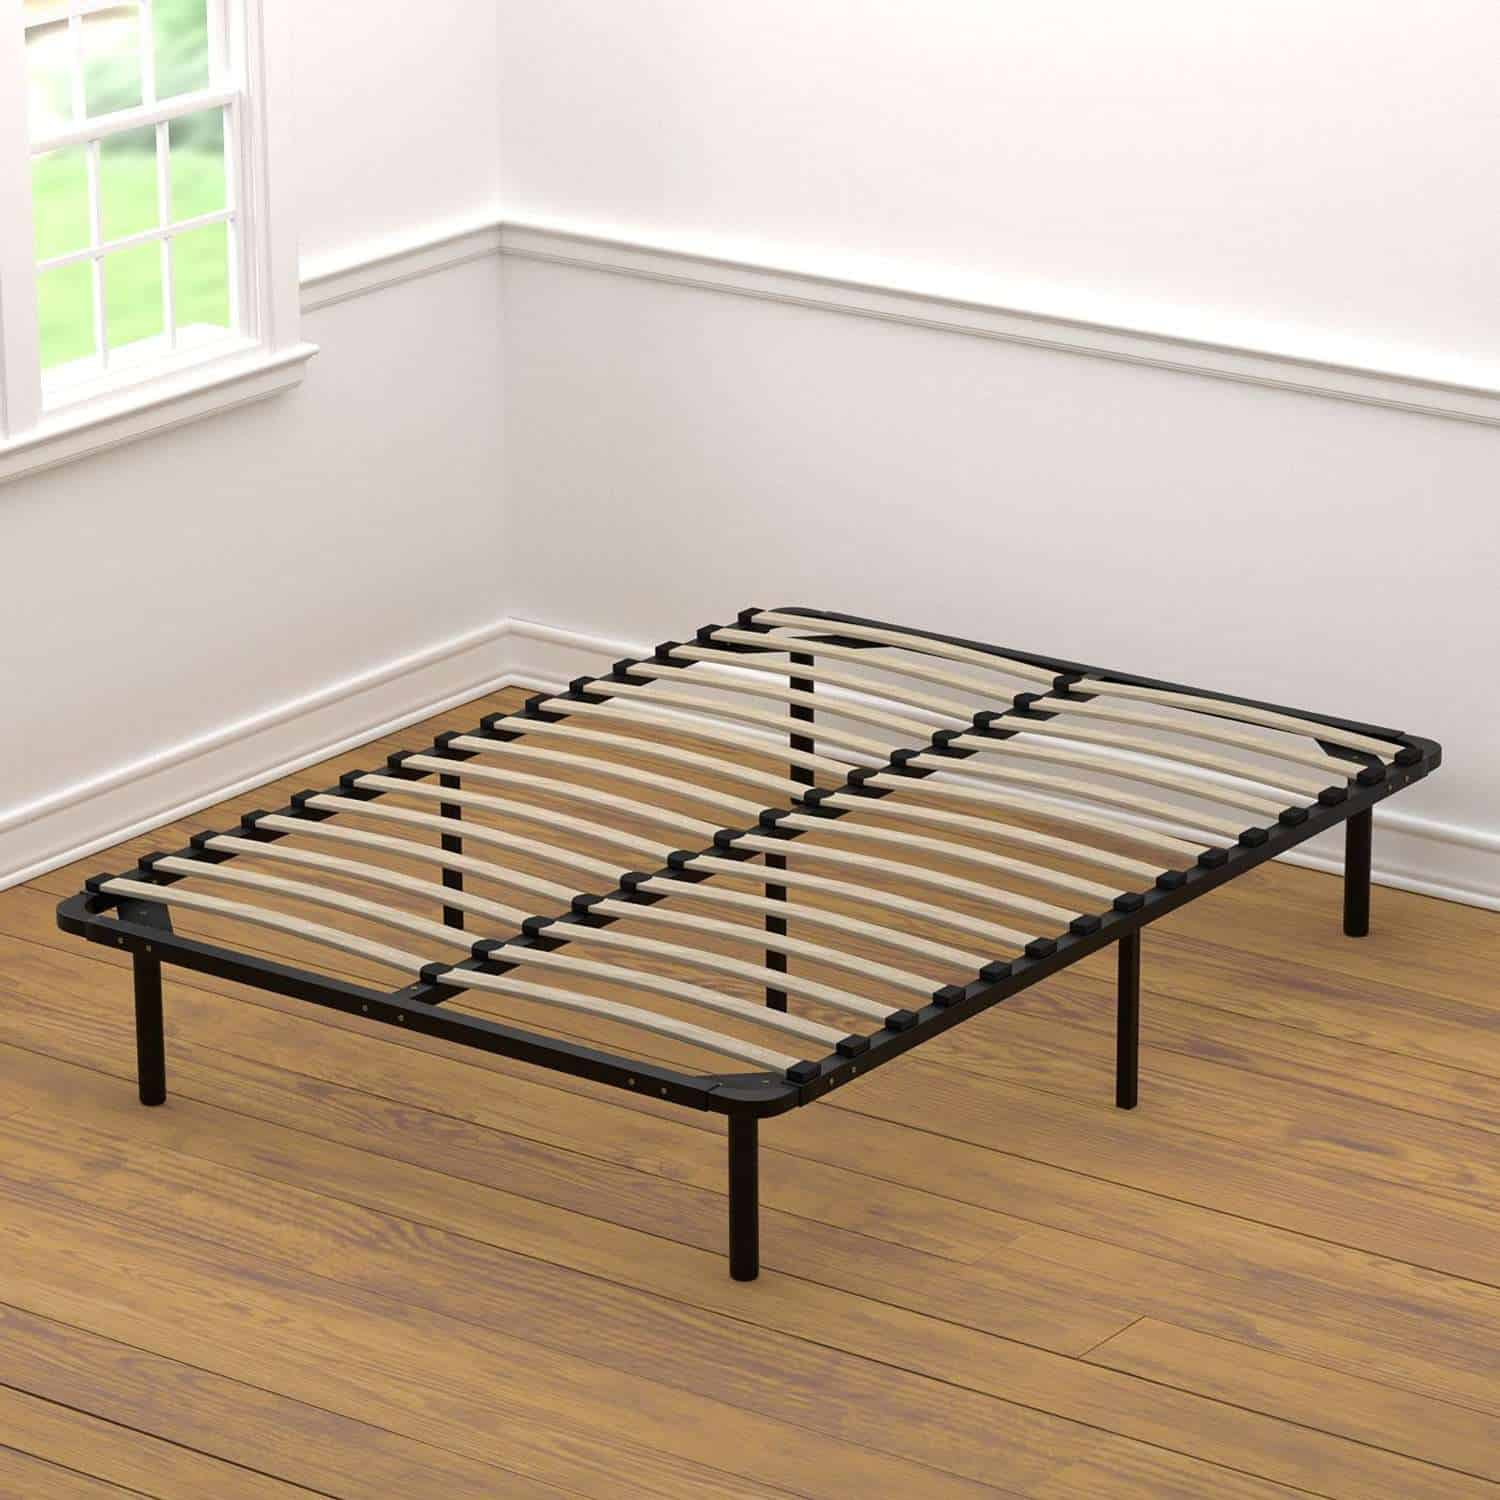 Best Bed Frame And Box Spring Reviews Amp Buying Guide Bed